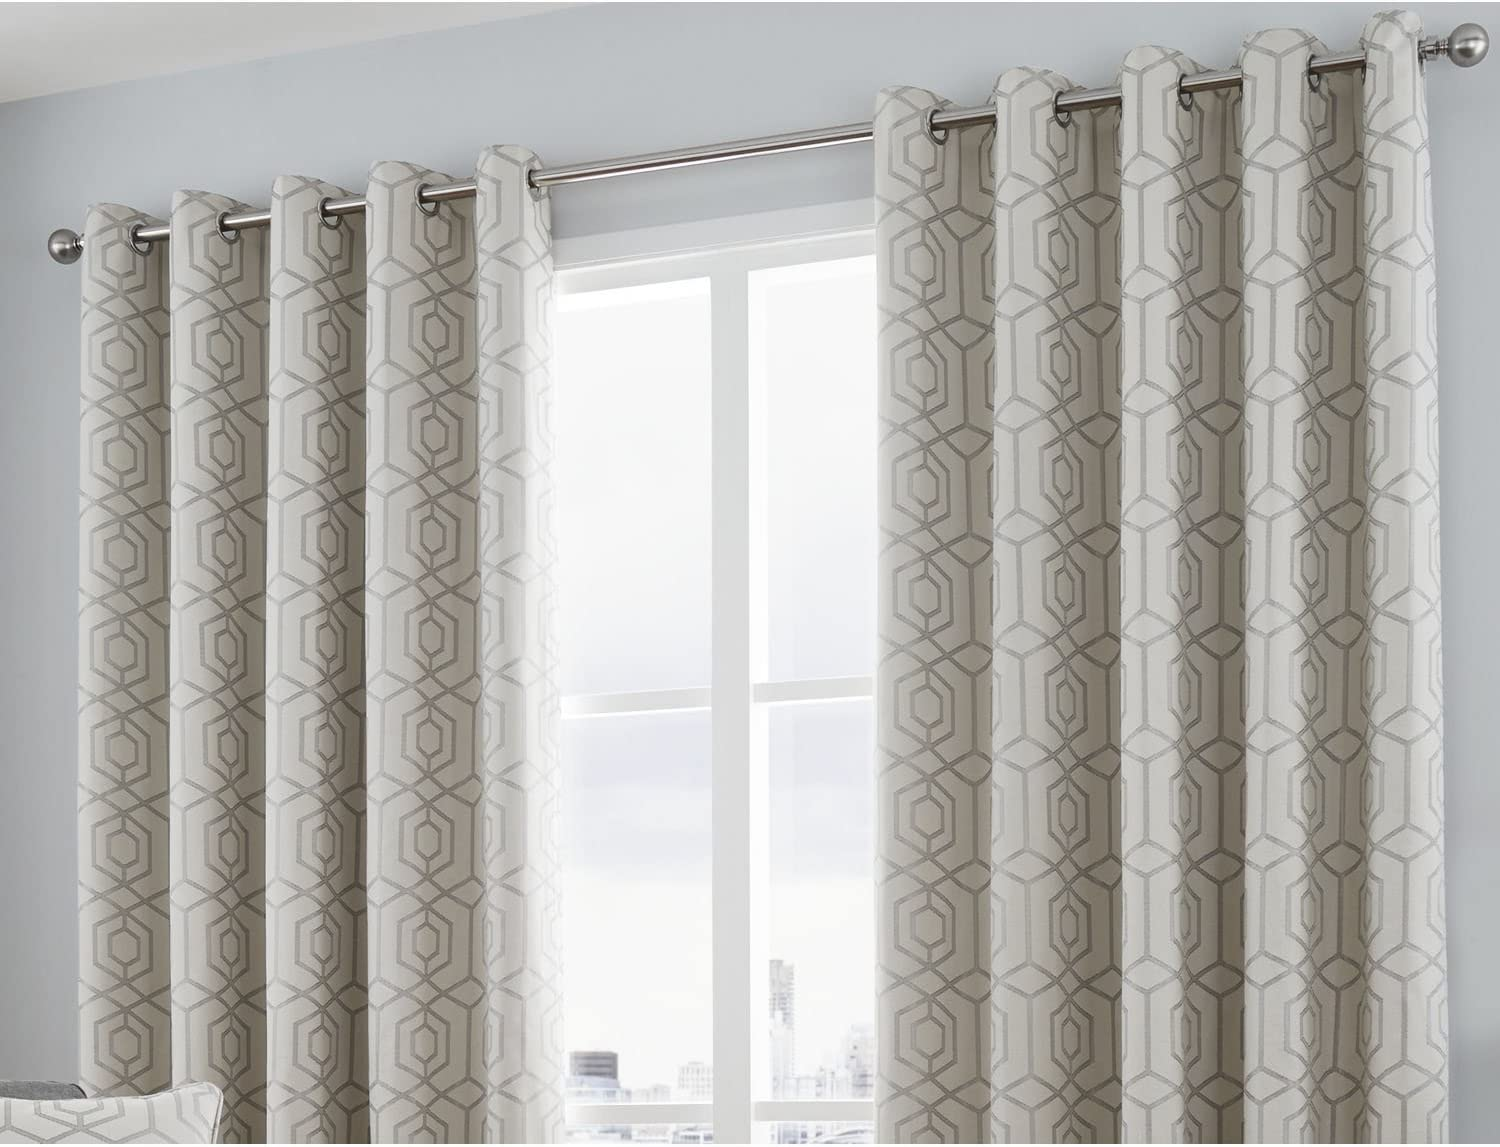 Camberwell Geometric Fully Lined Eyelet Omaha Mall Grommet S Top Curtains Max 56% OFF -